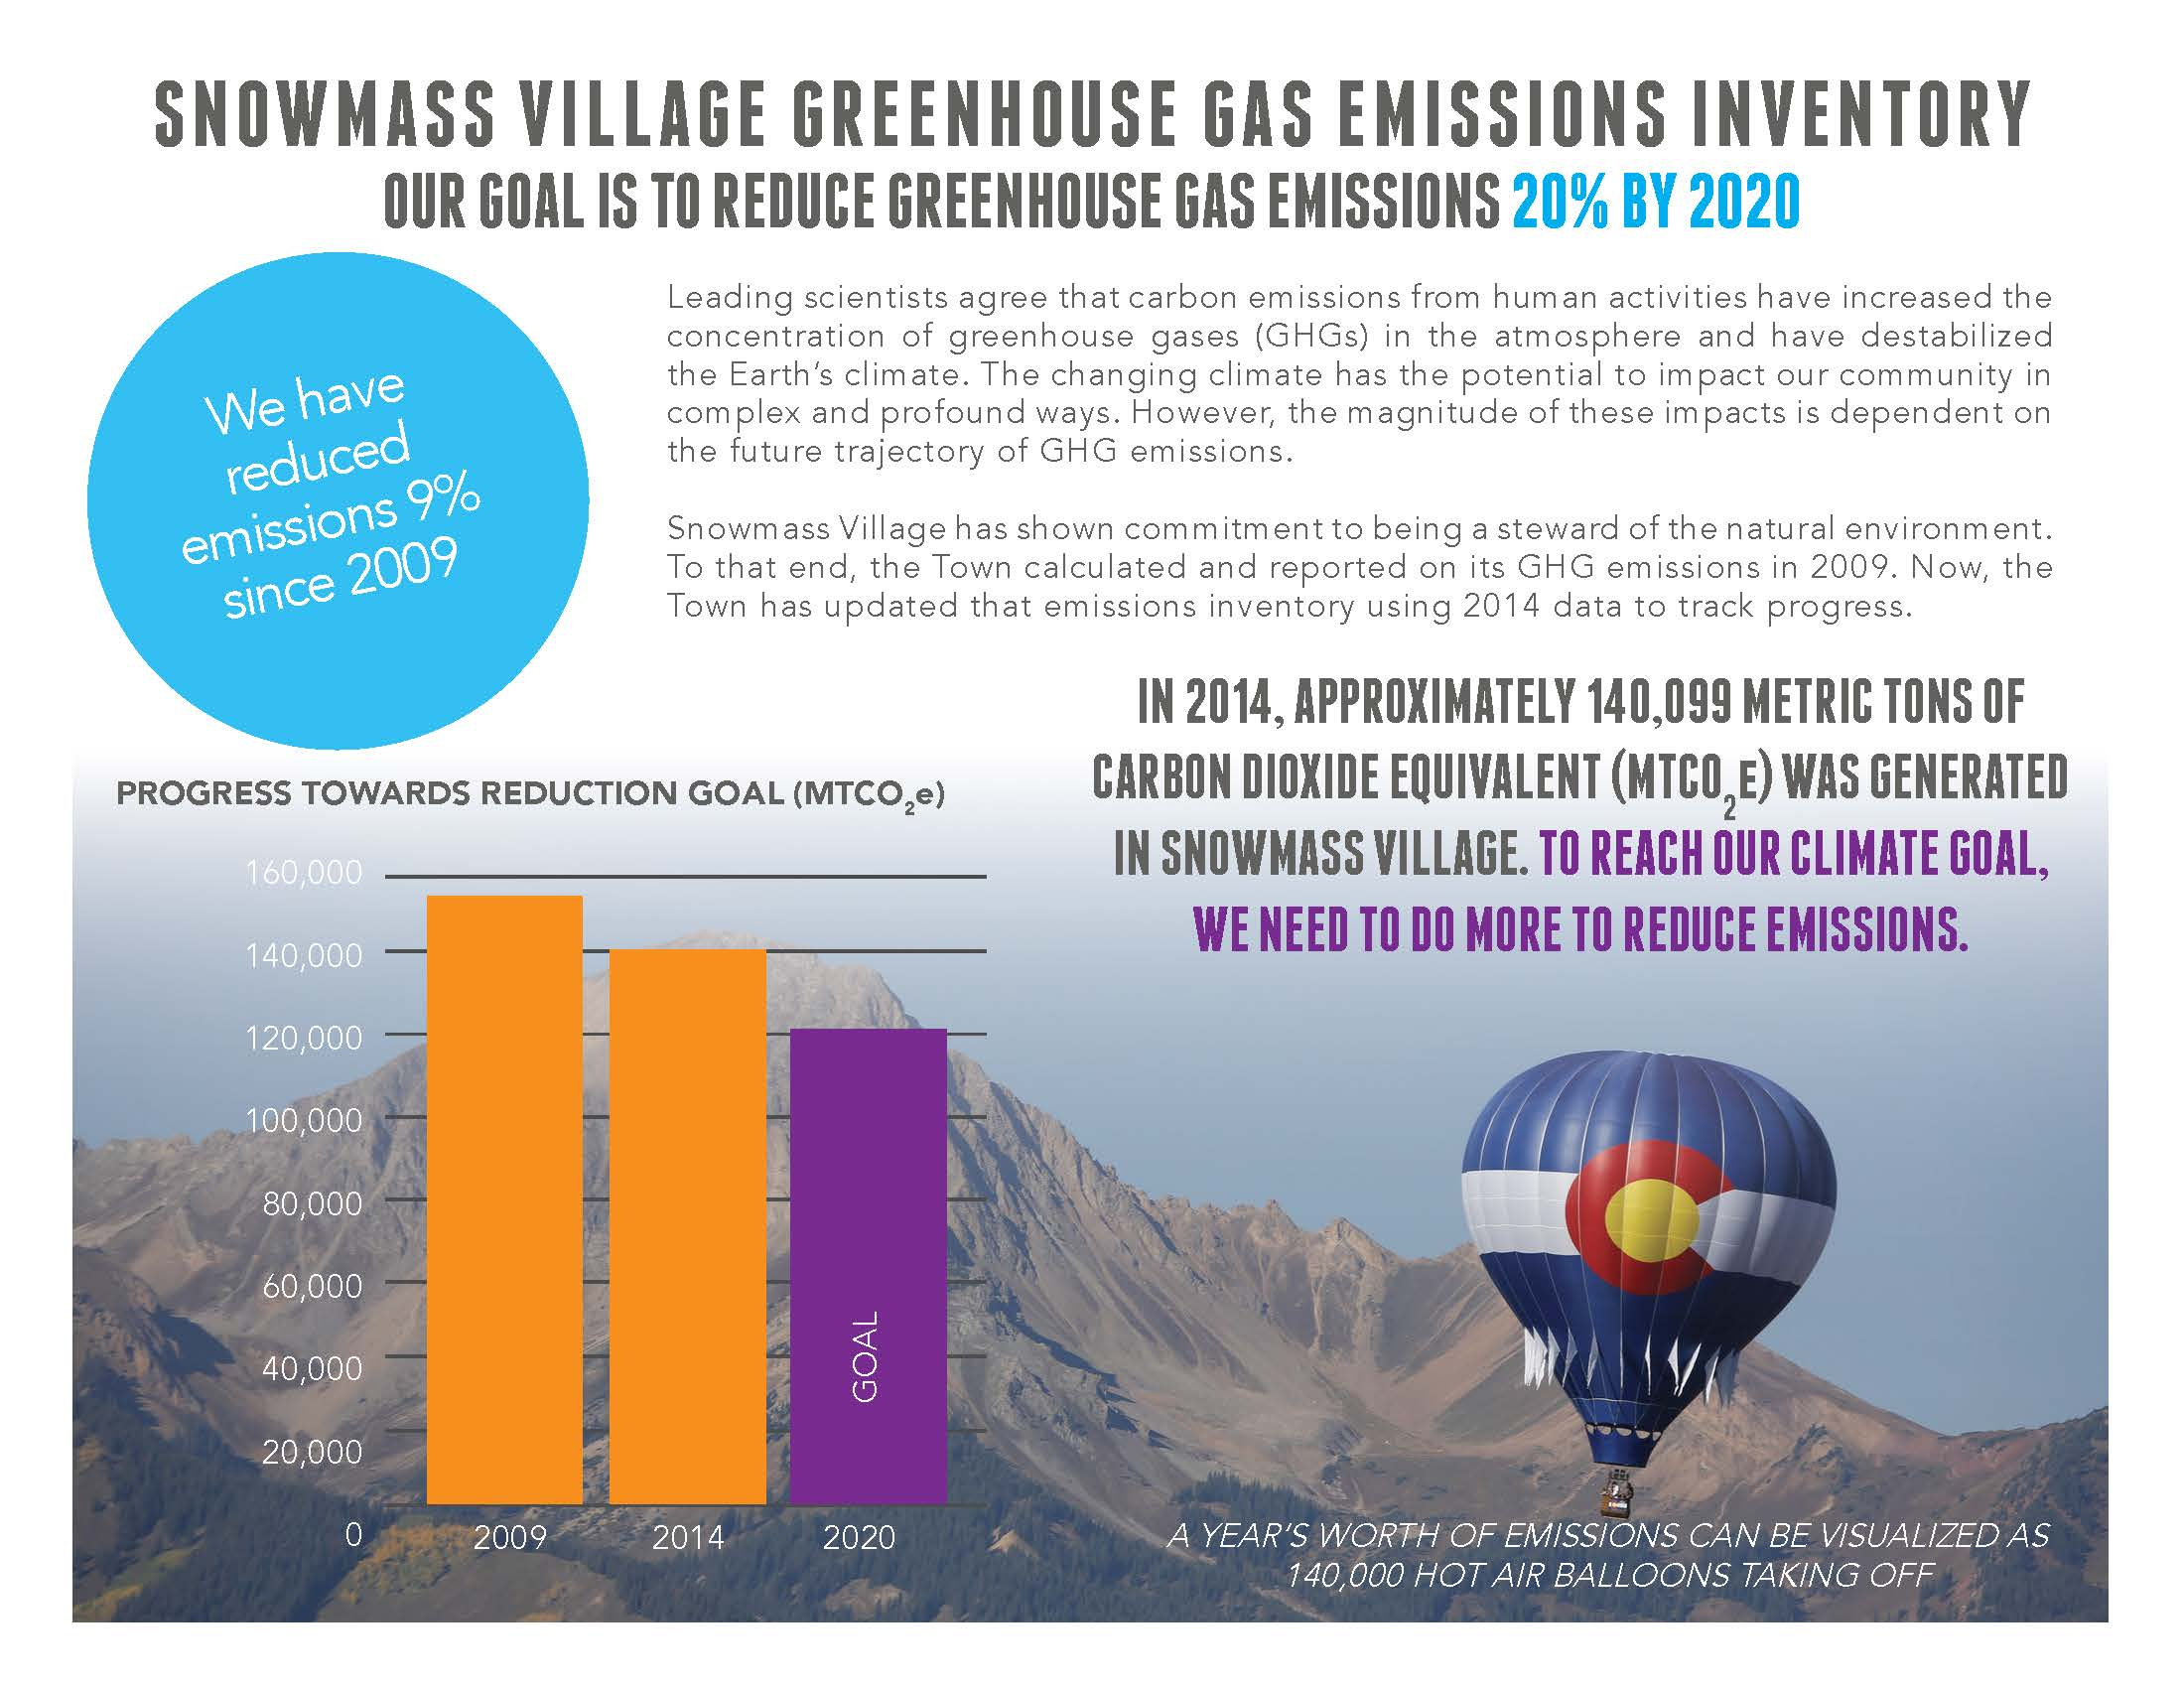 Snowmass Village Greenhouse Gas Emissions Inventory Summary